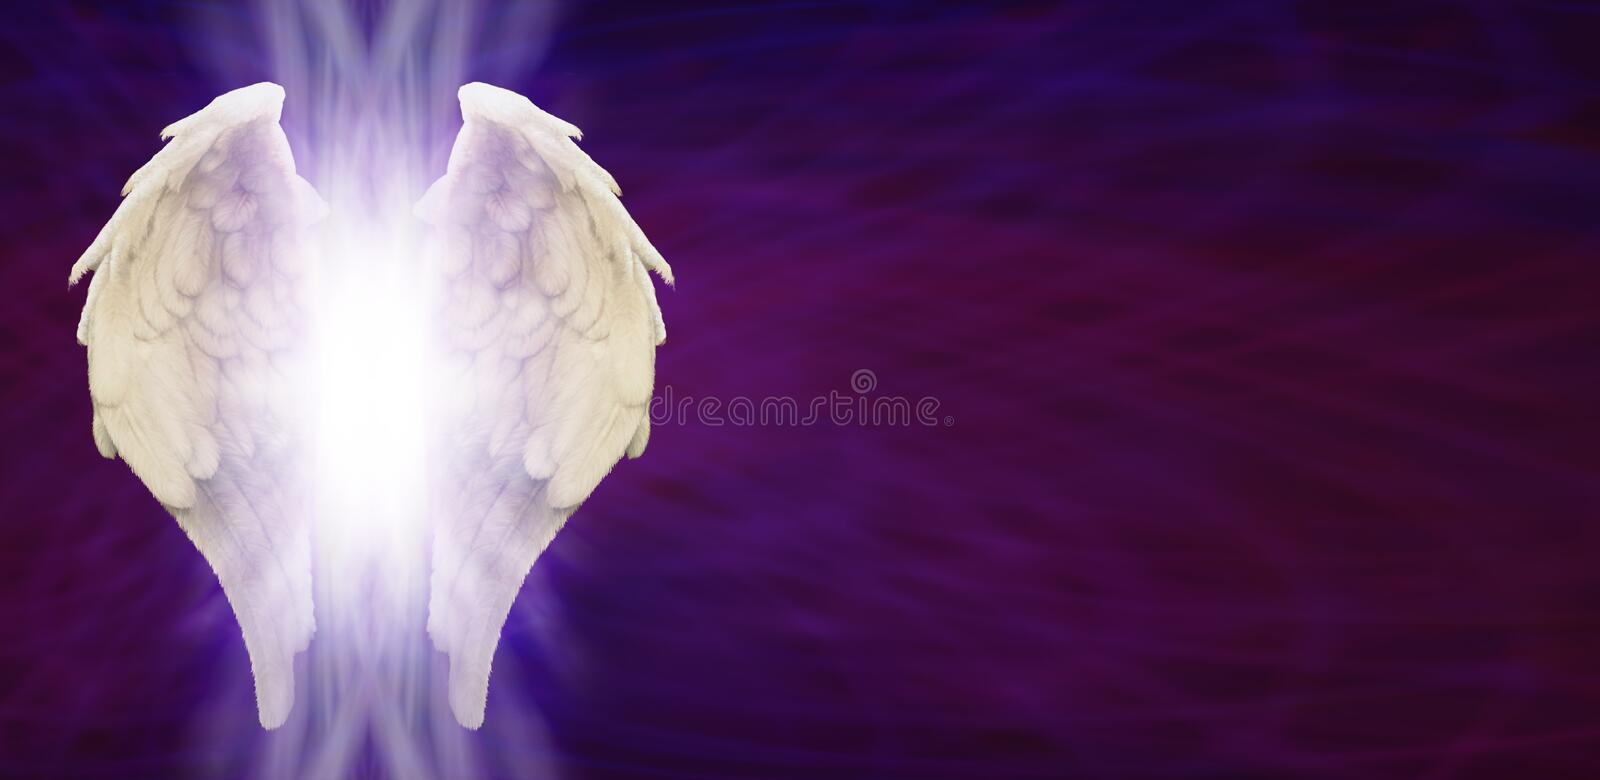 Angel Wings Banner Head na matriz roxa